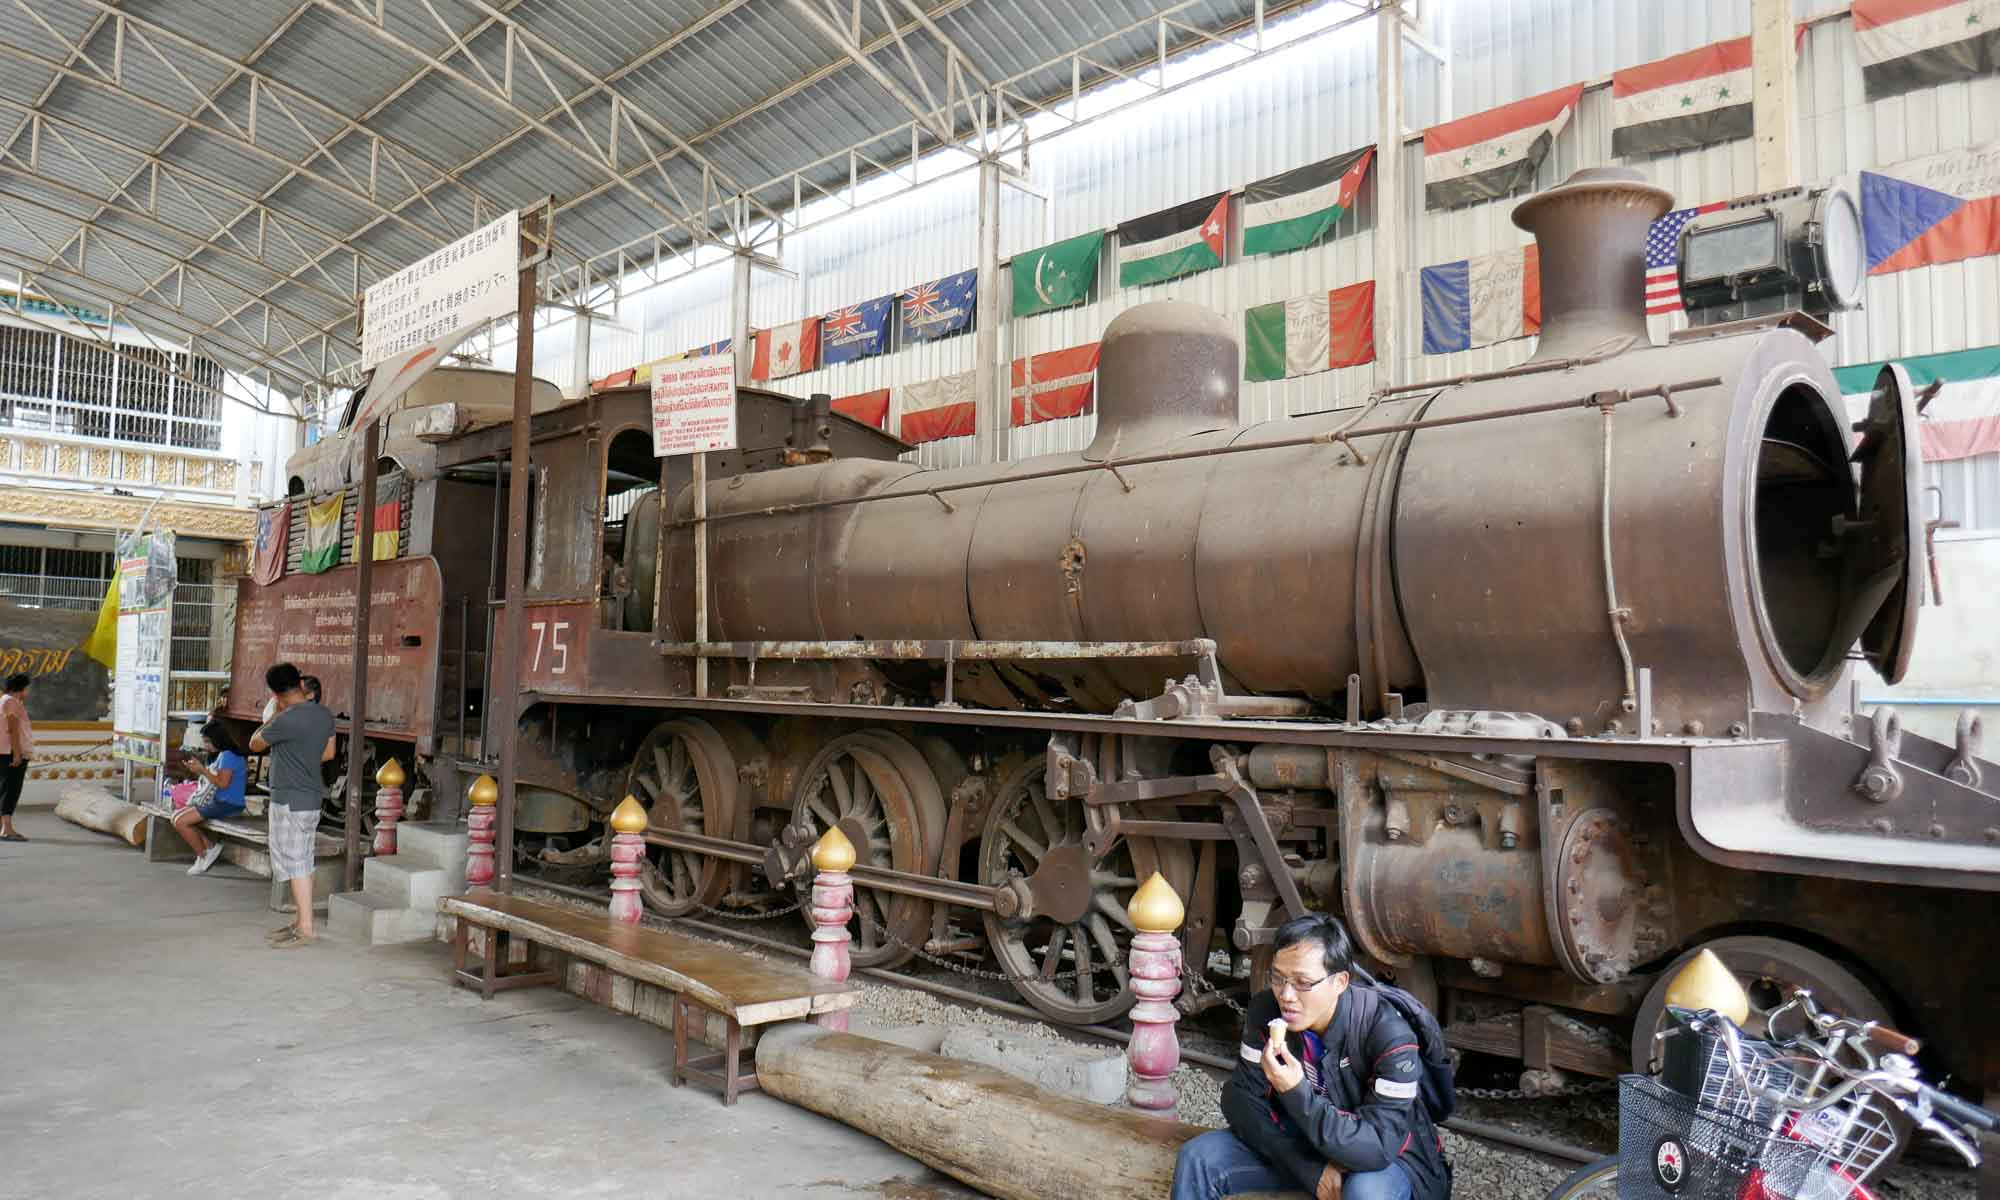 Old steam engine at entrance of Jeath Museum 2